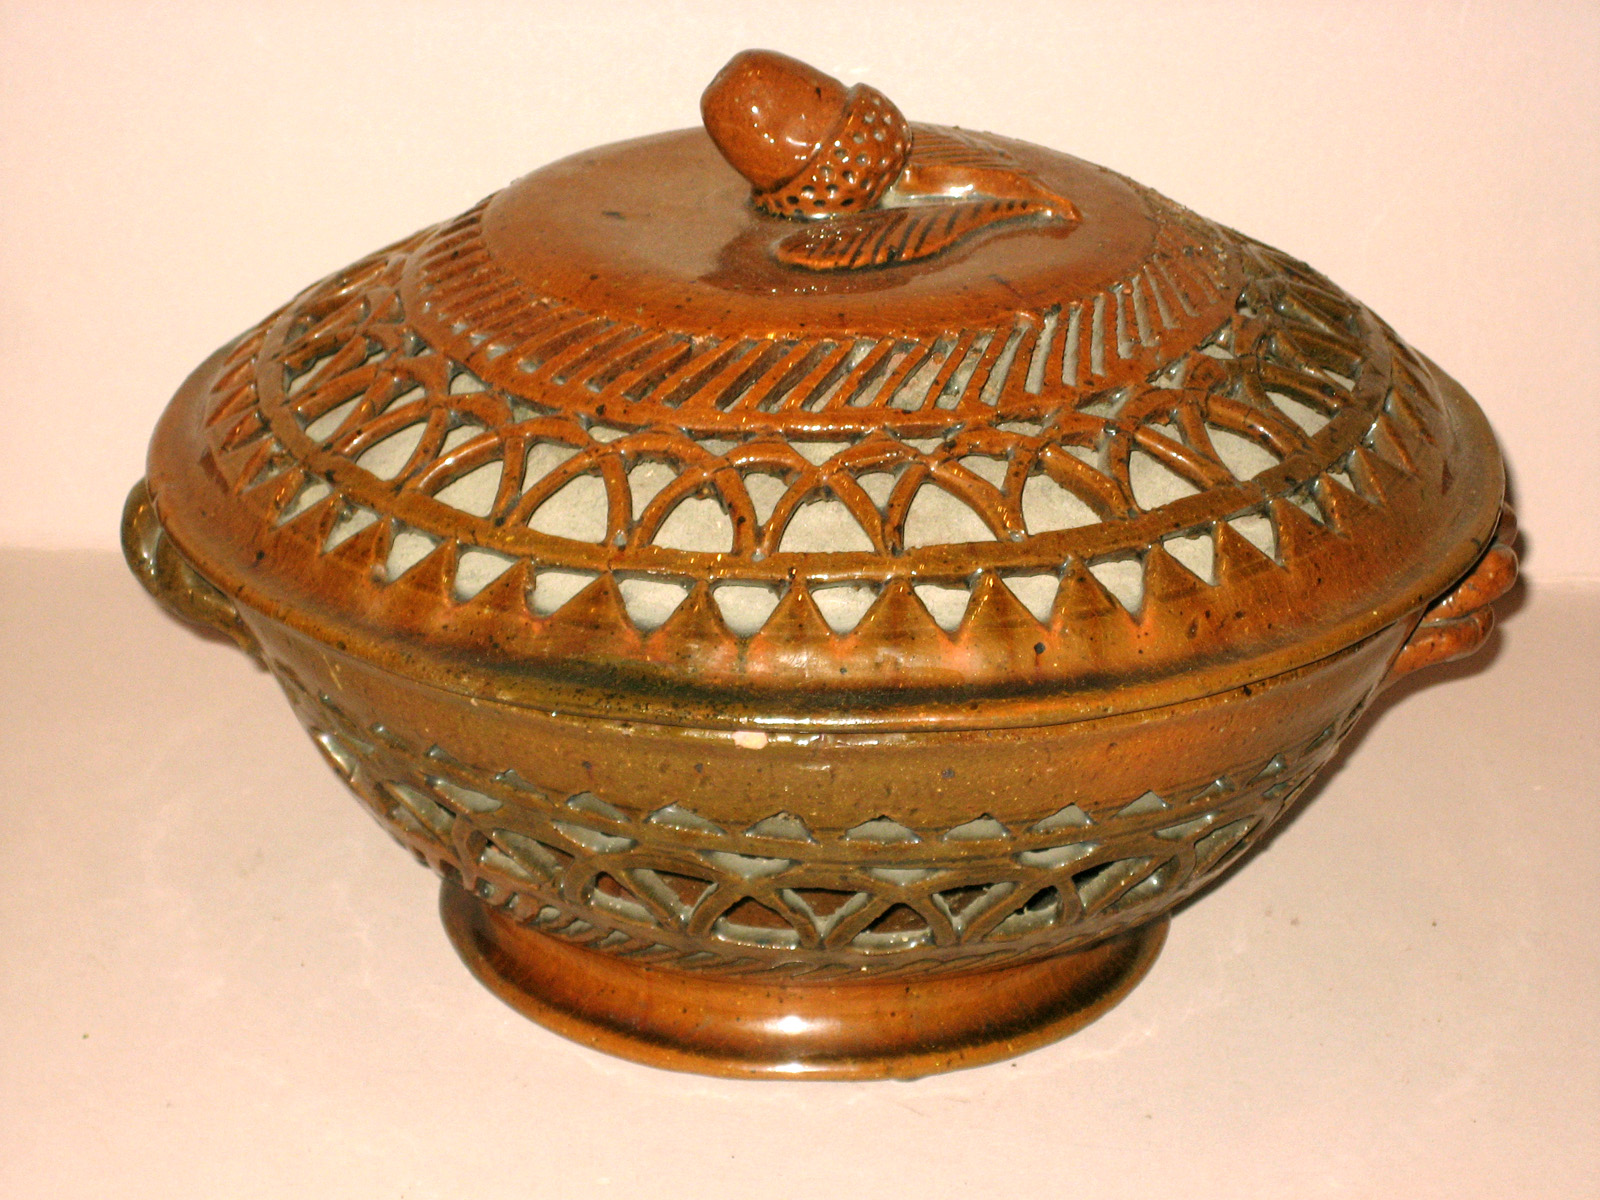 1967.1803 Bowl and Cover